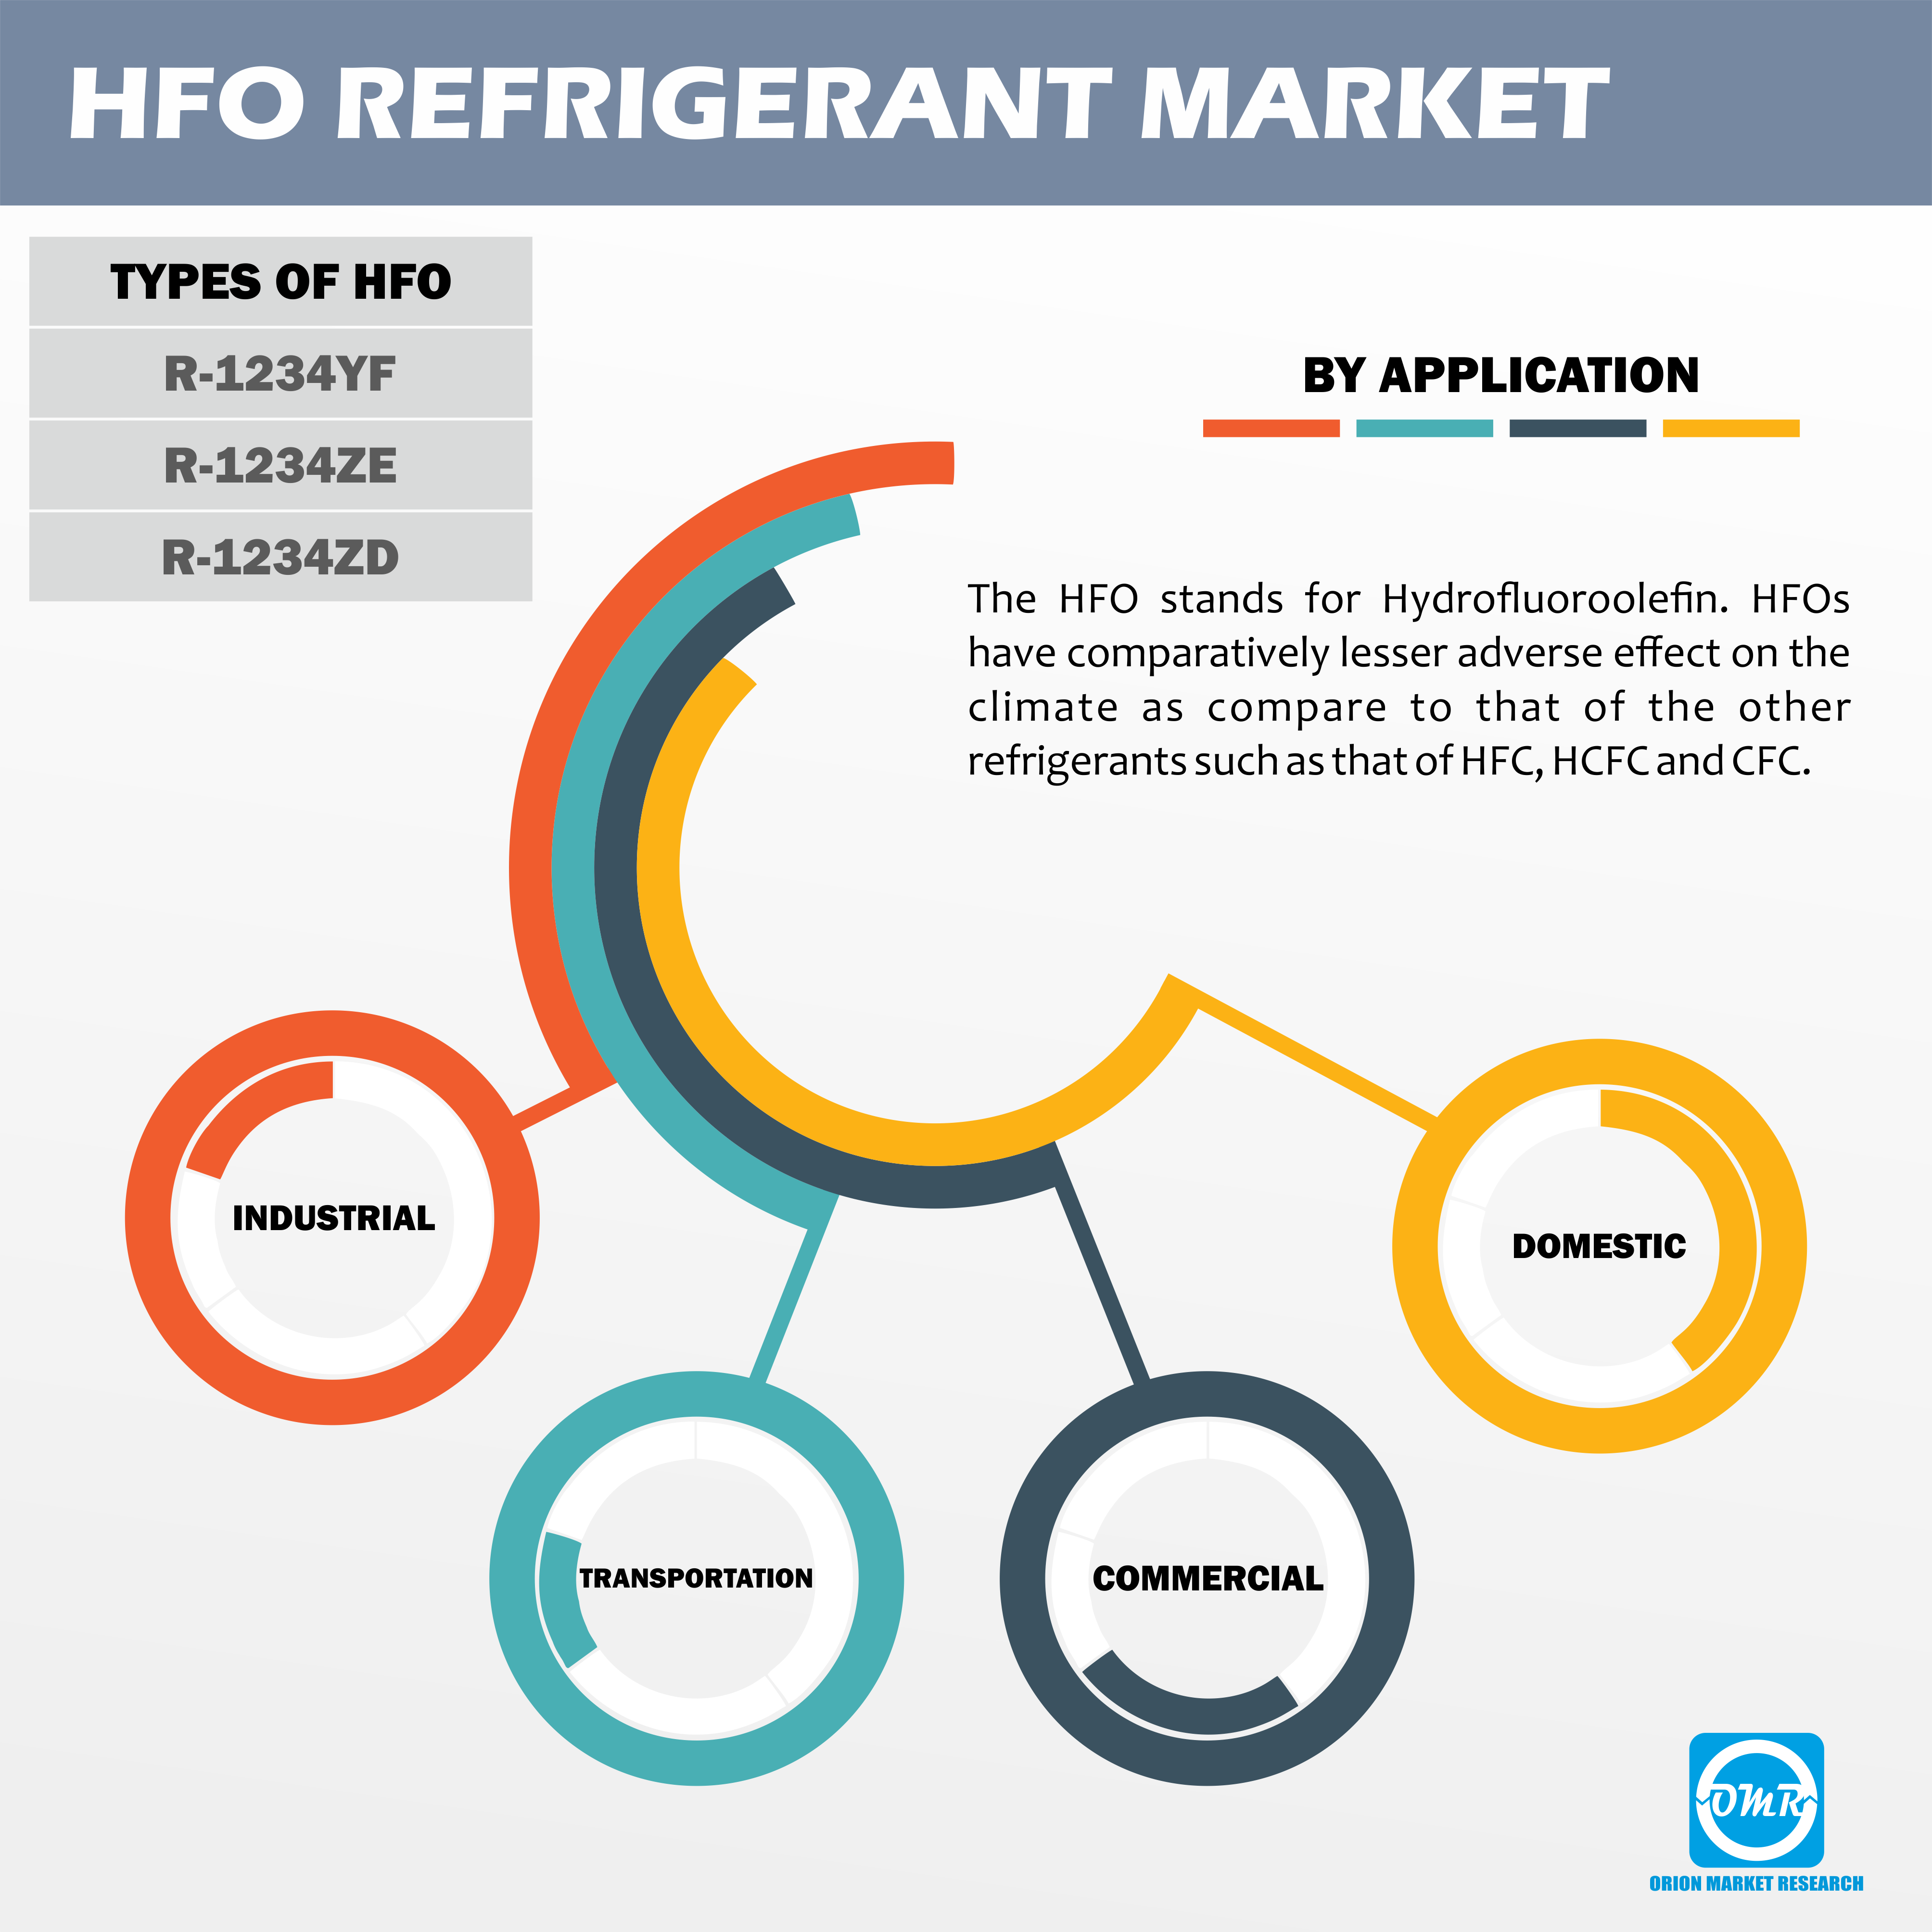 Global HFO Refrigerant Market Research and Forecast 2018-2023